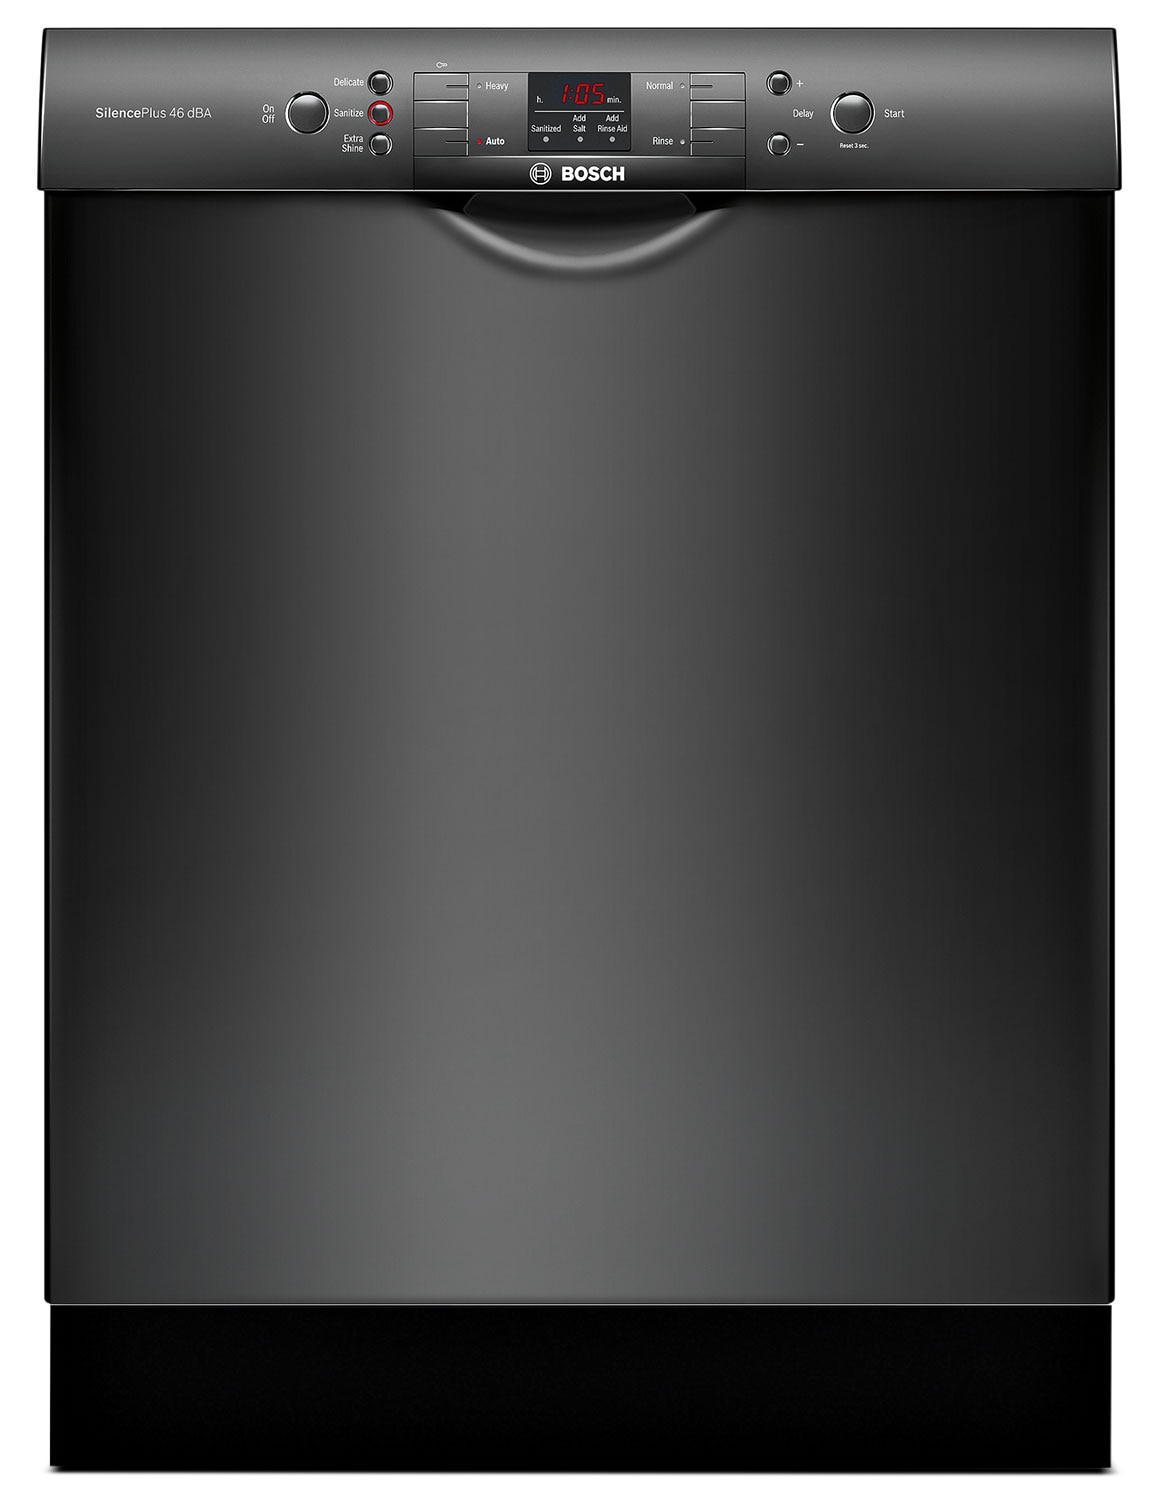 Bosch 300 Series Recessed Handle Built-In Dishwasher – SGE53U56UC